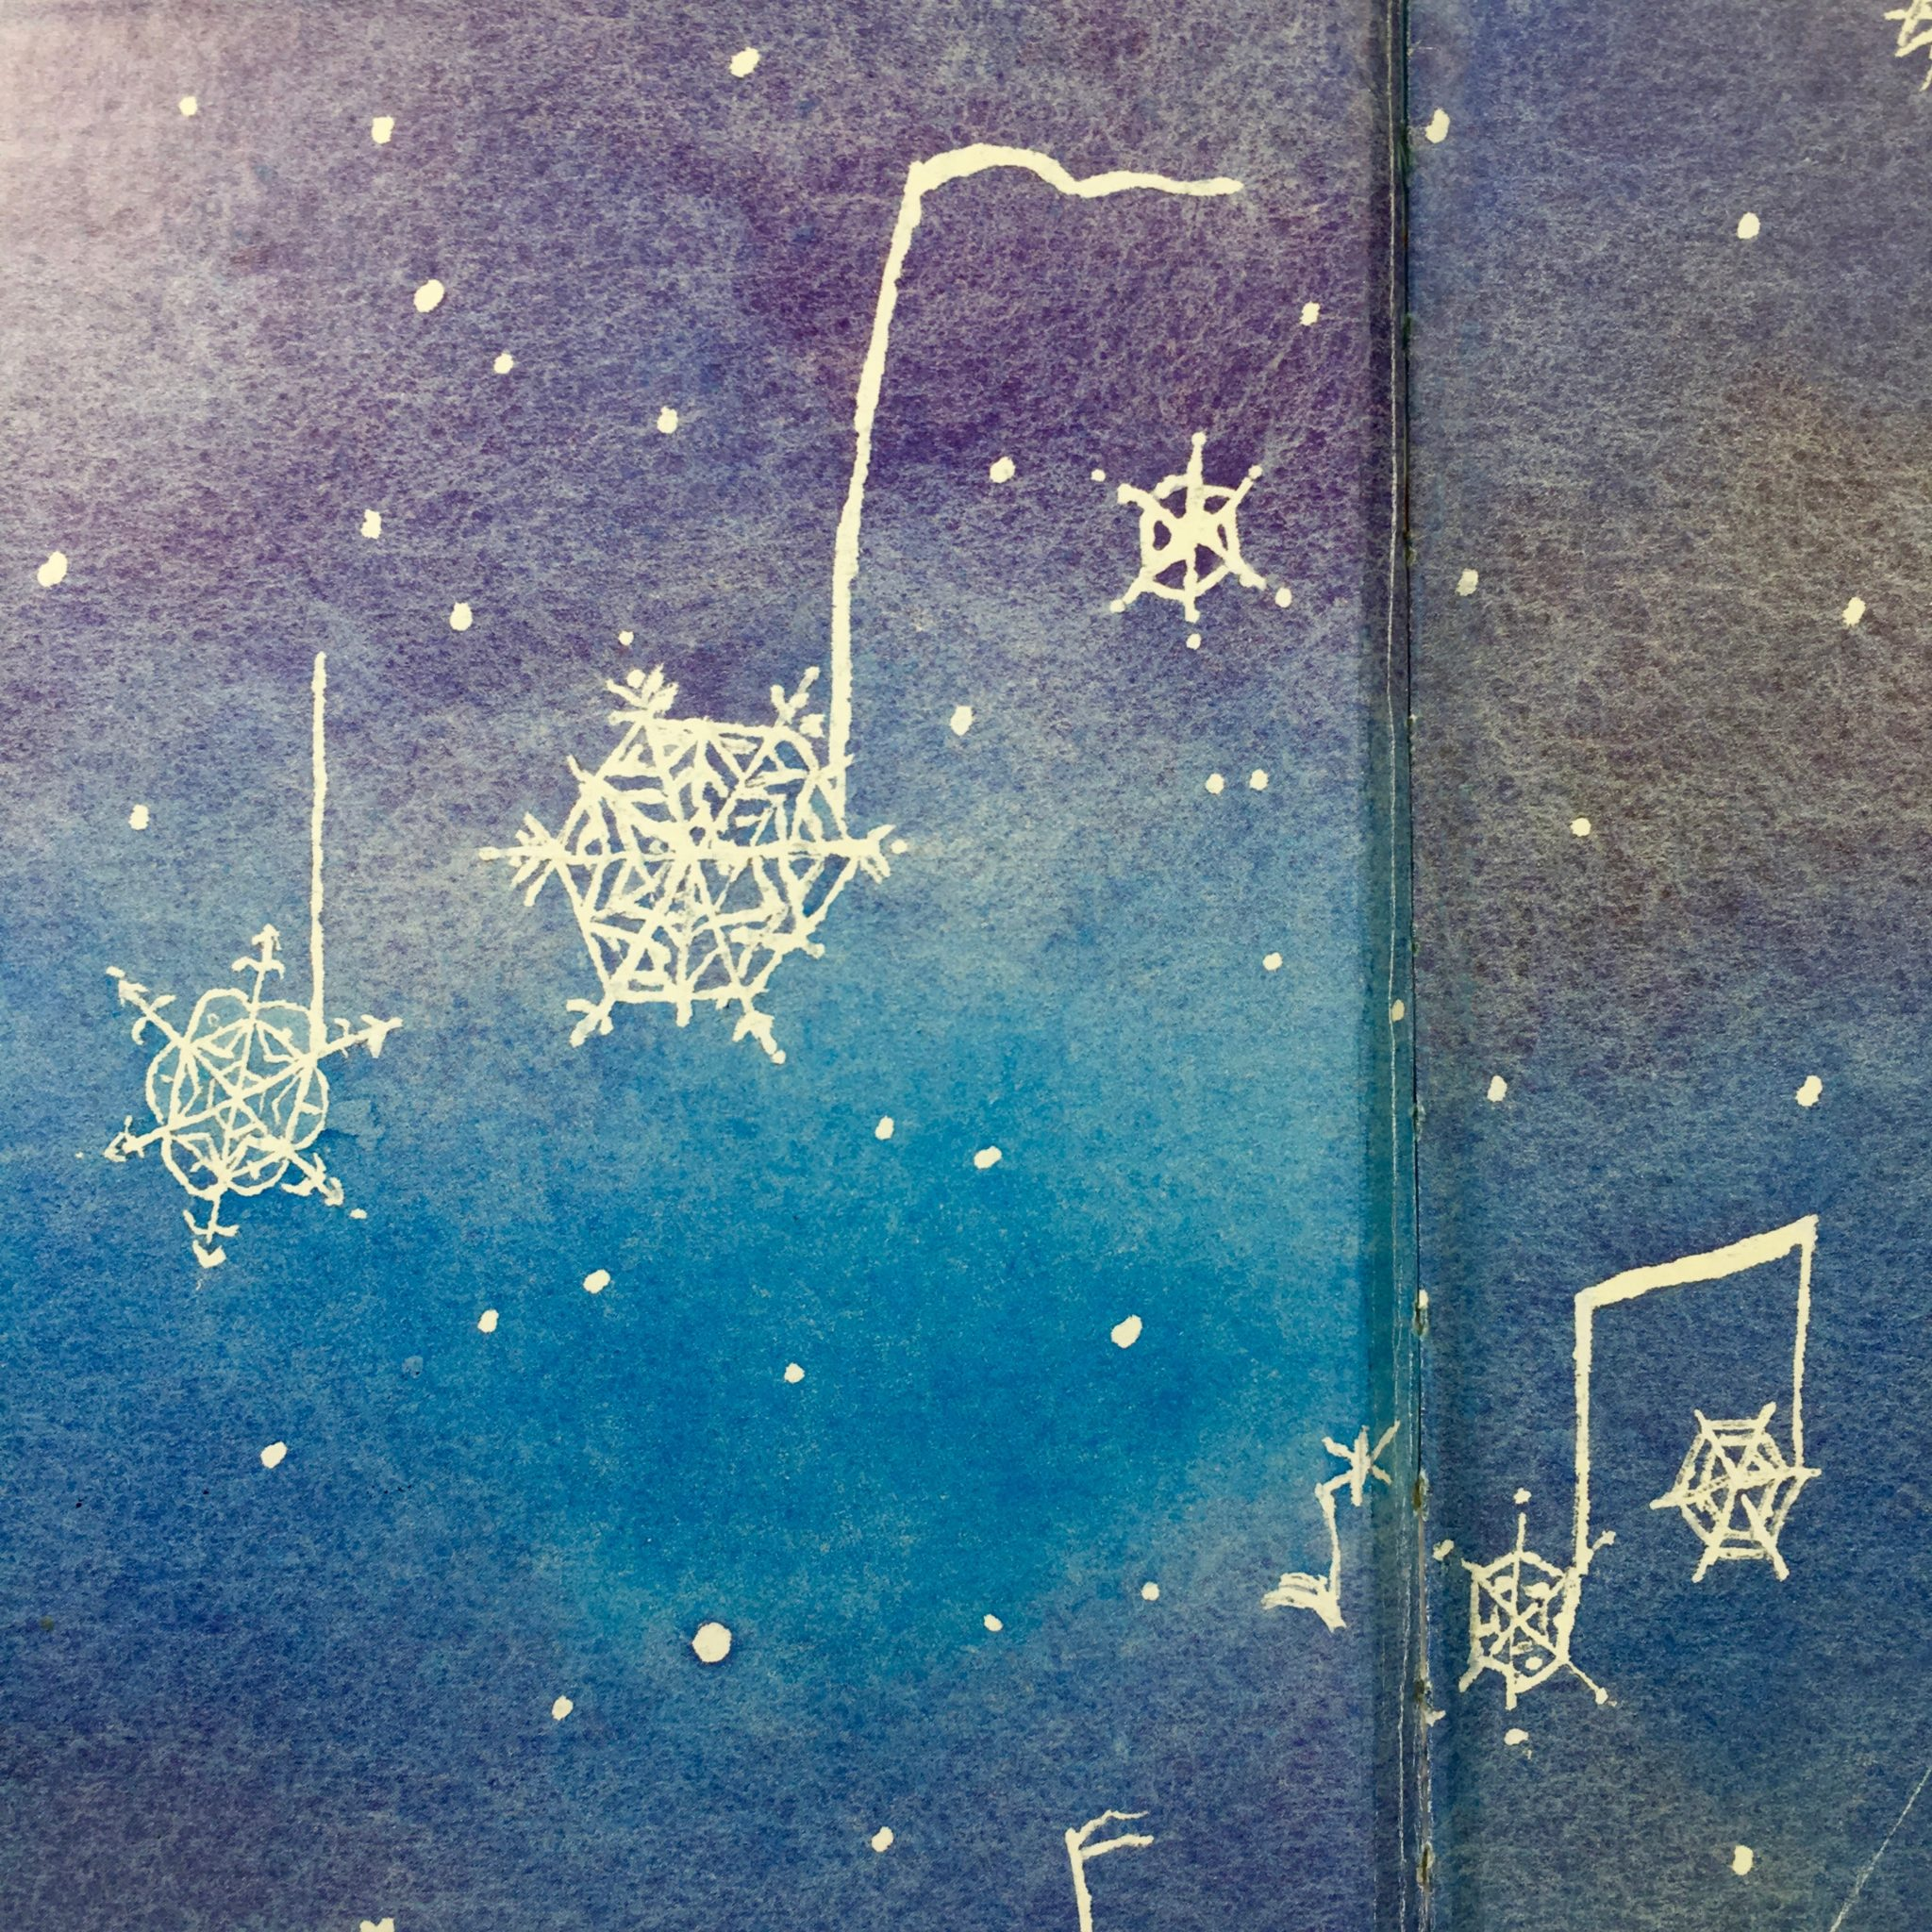 """Endpapers from """"Snow Music"""" by Lynne Rae Perkins"""